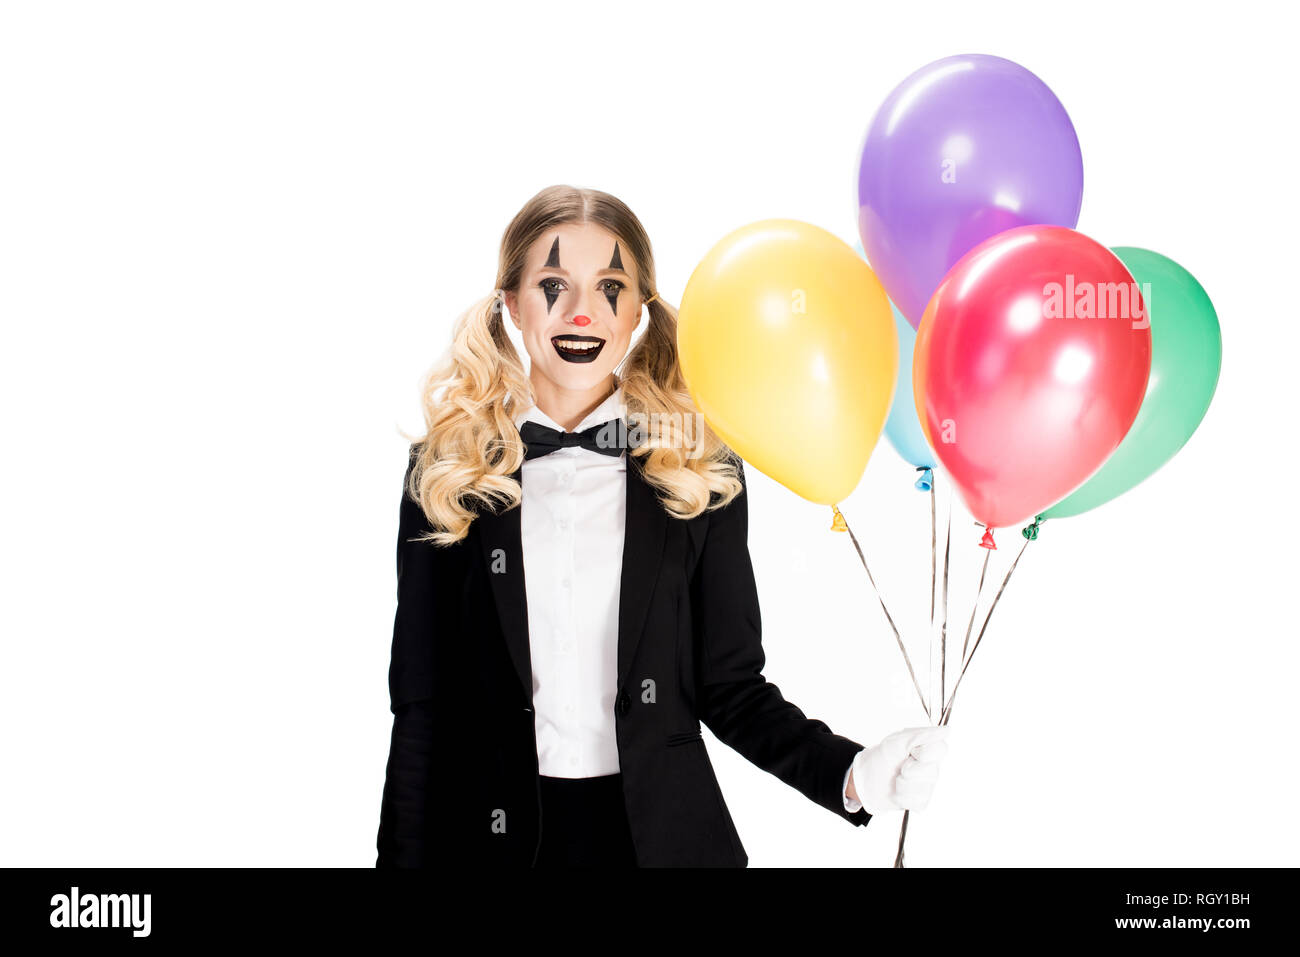 cheerful female clown in suit holding balloons and smiling isolated on white - Stock Image